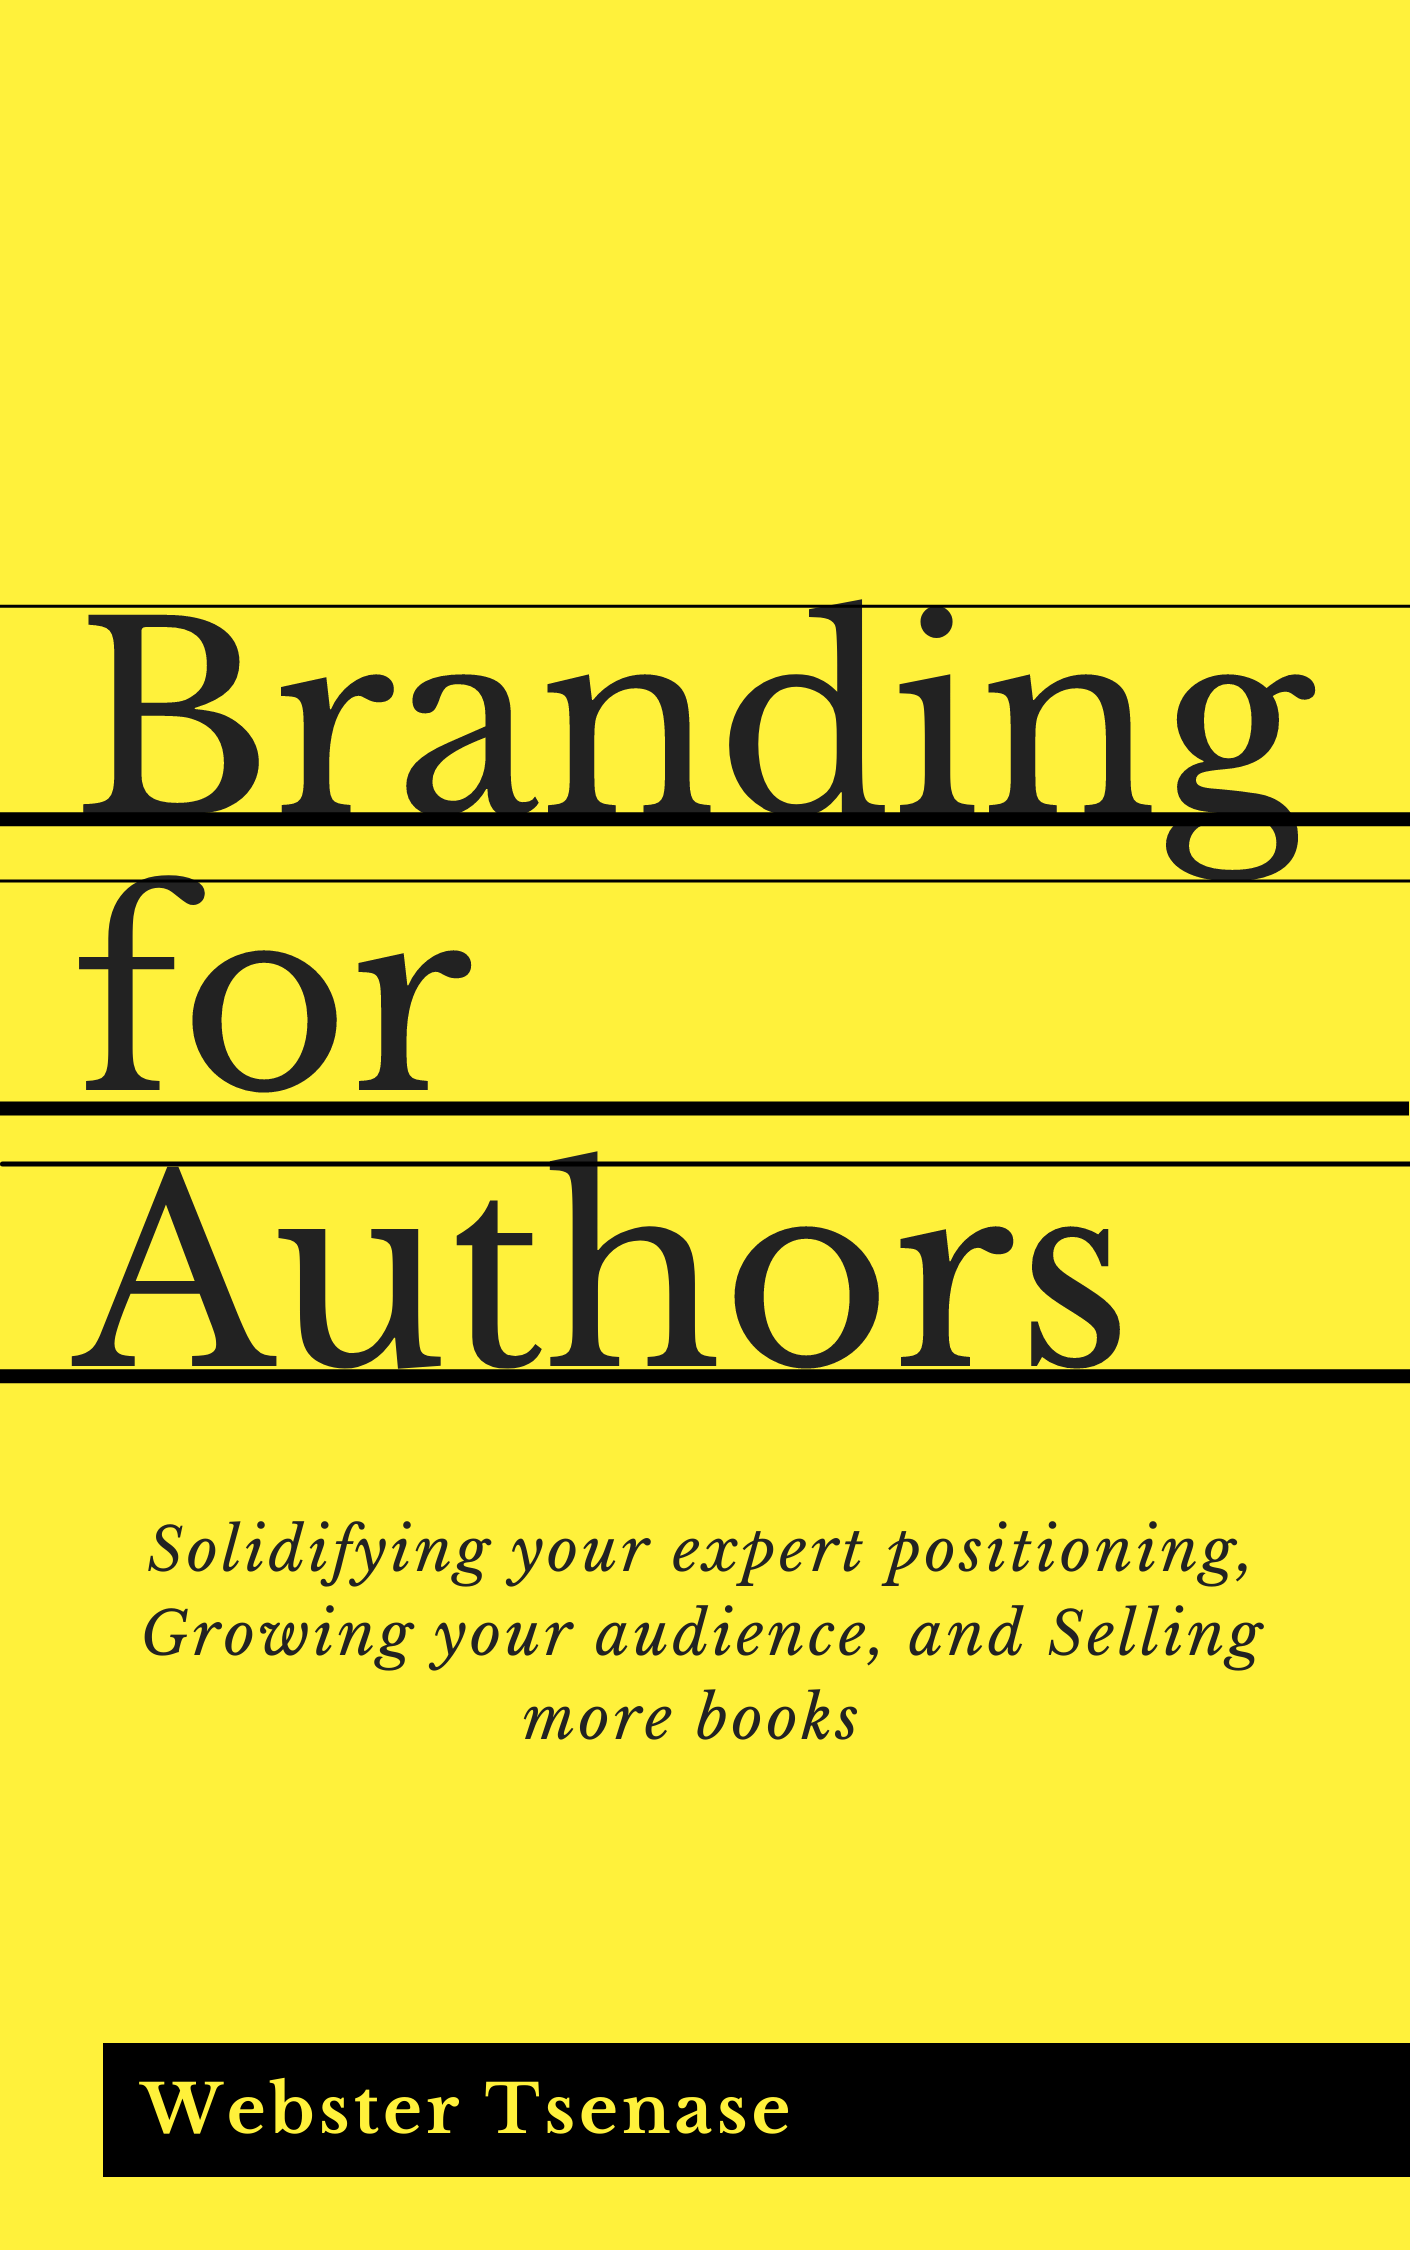 Branding for Authors book